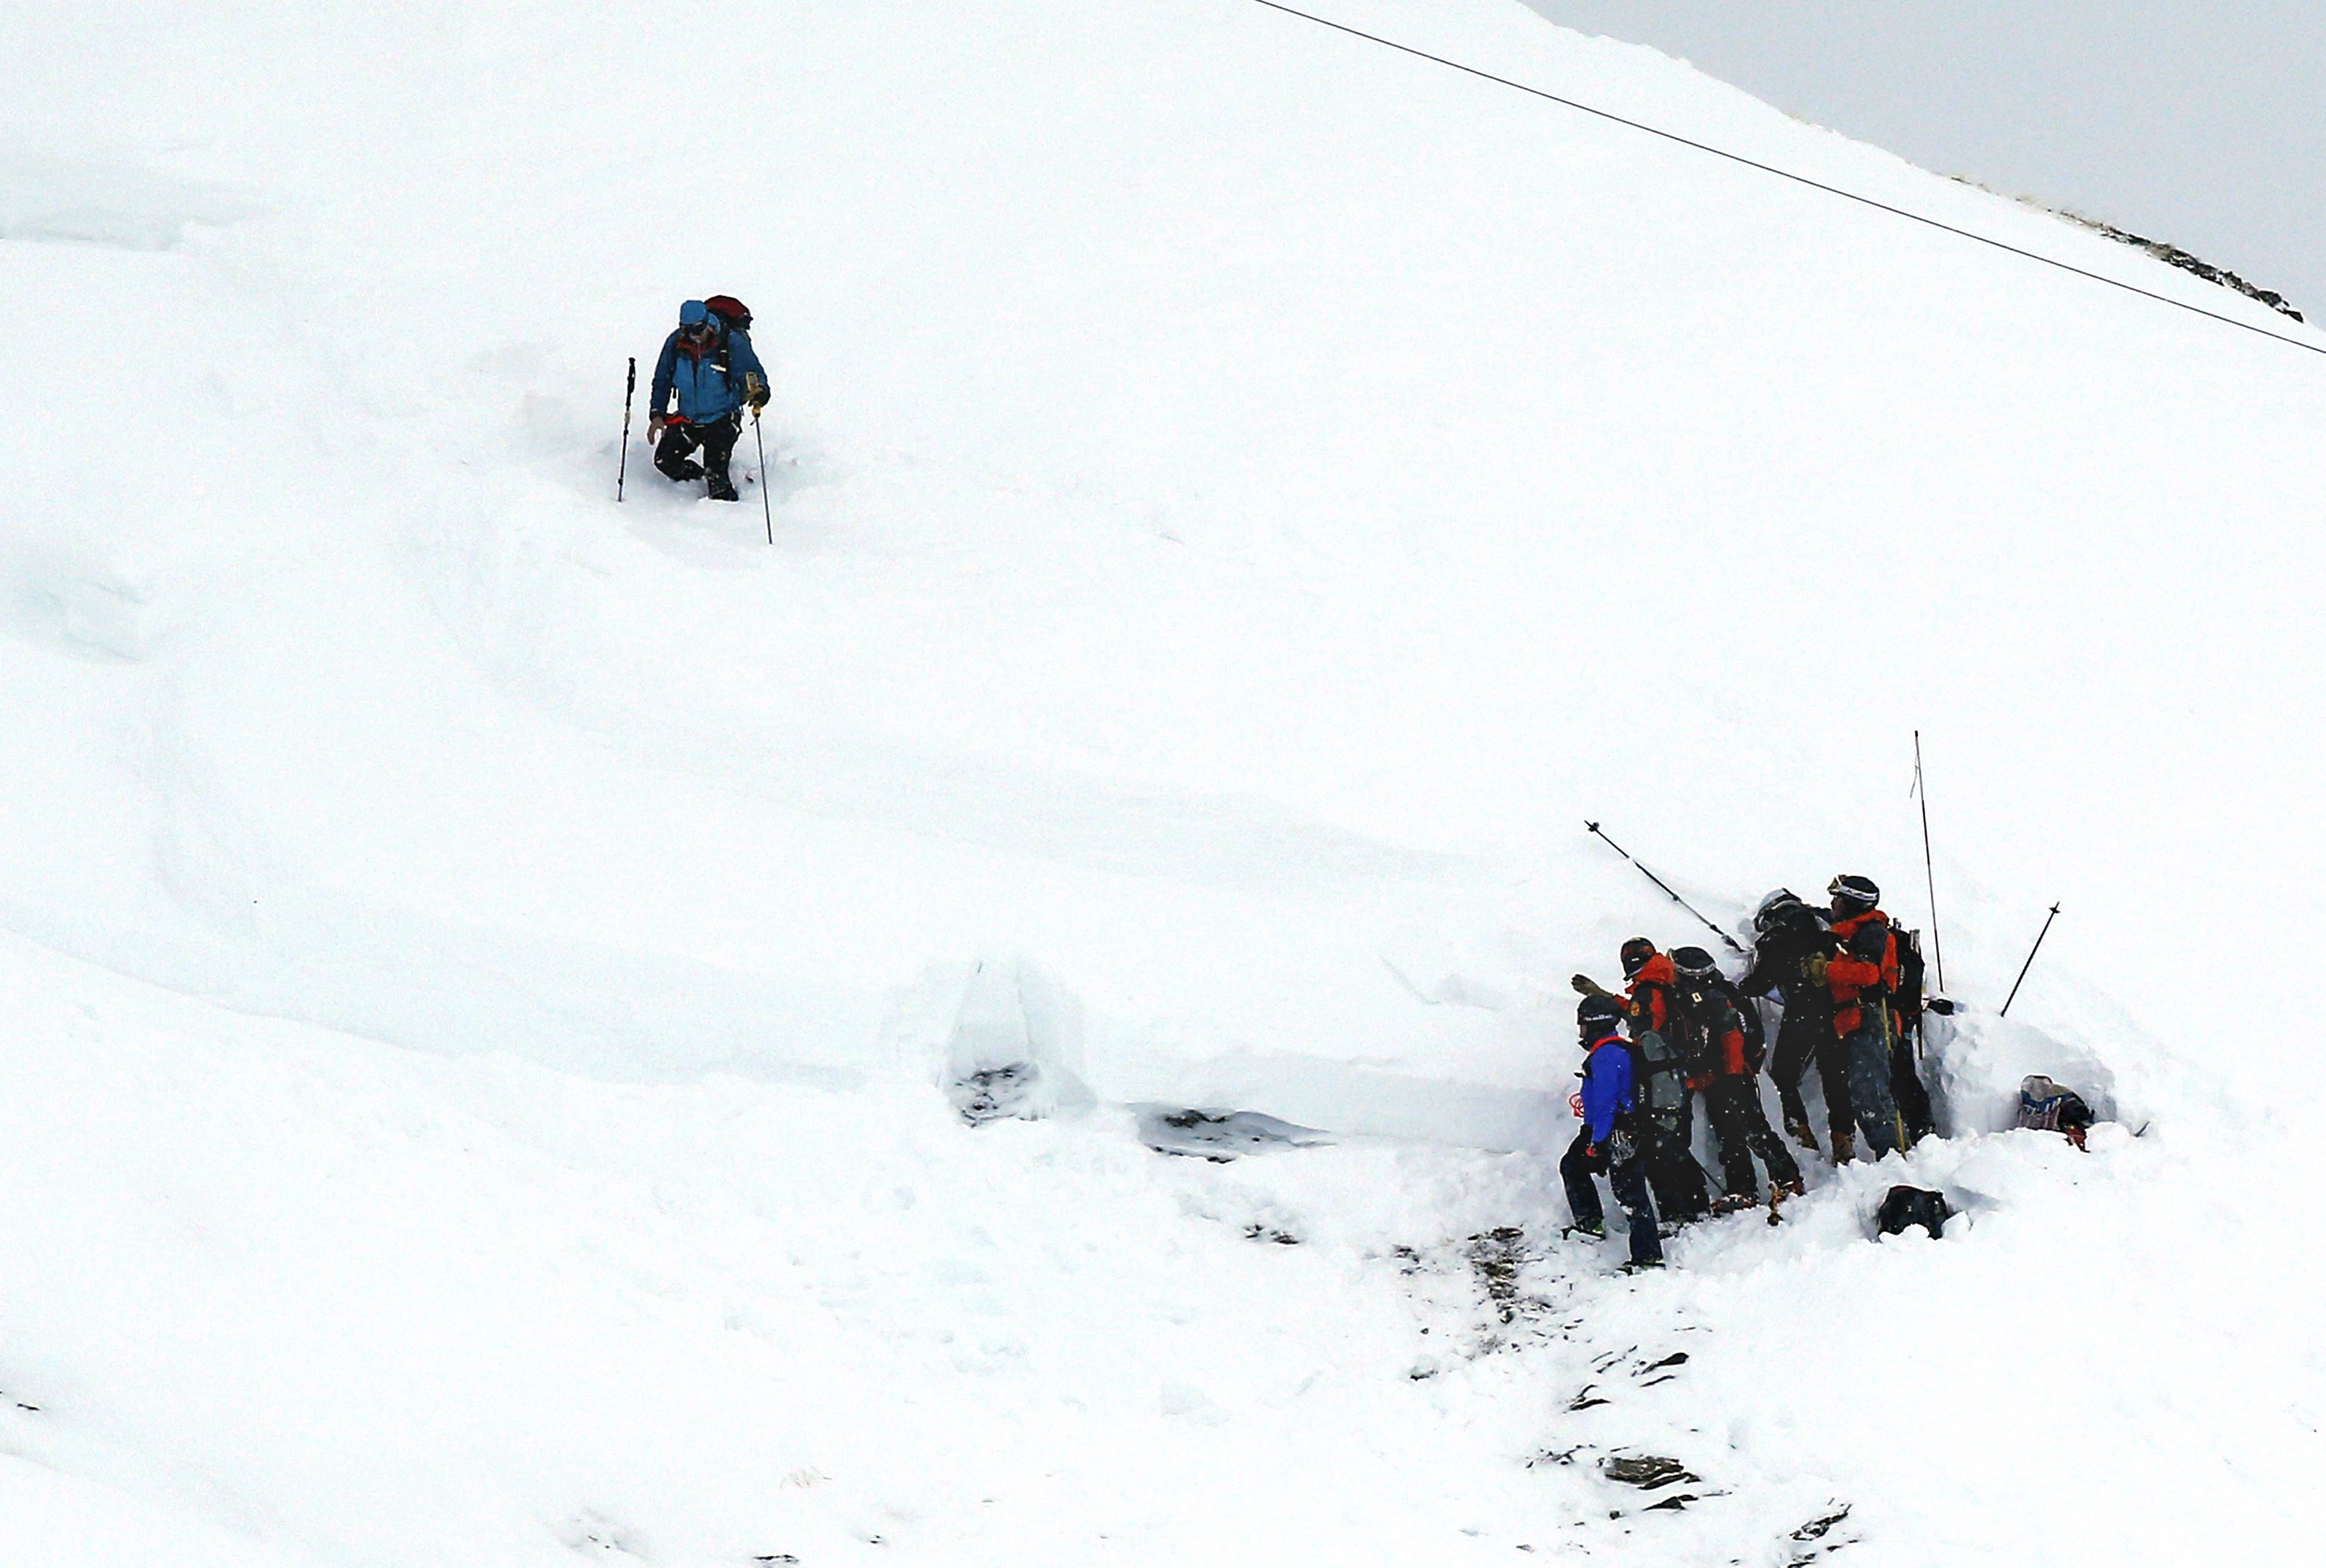 Members of a rescue team search in the snow for missing people after an avalanche swept away a group of people that included a party of schoolchildren, in Les Deux Alpes, France on Jan. 14, 2016.